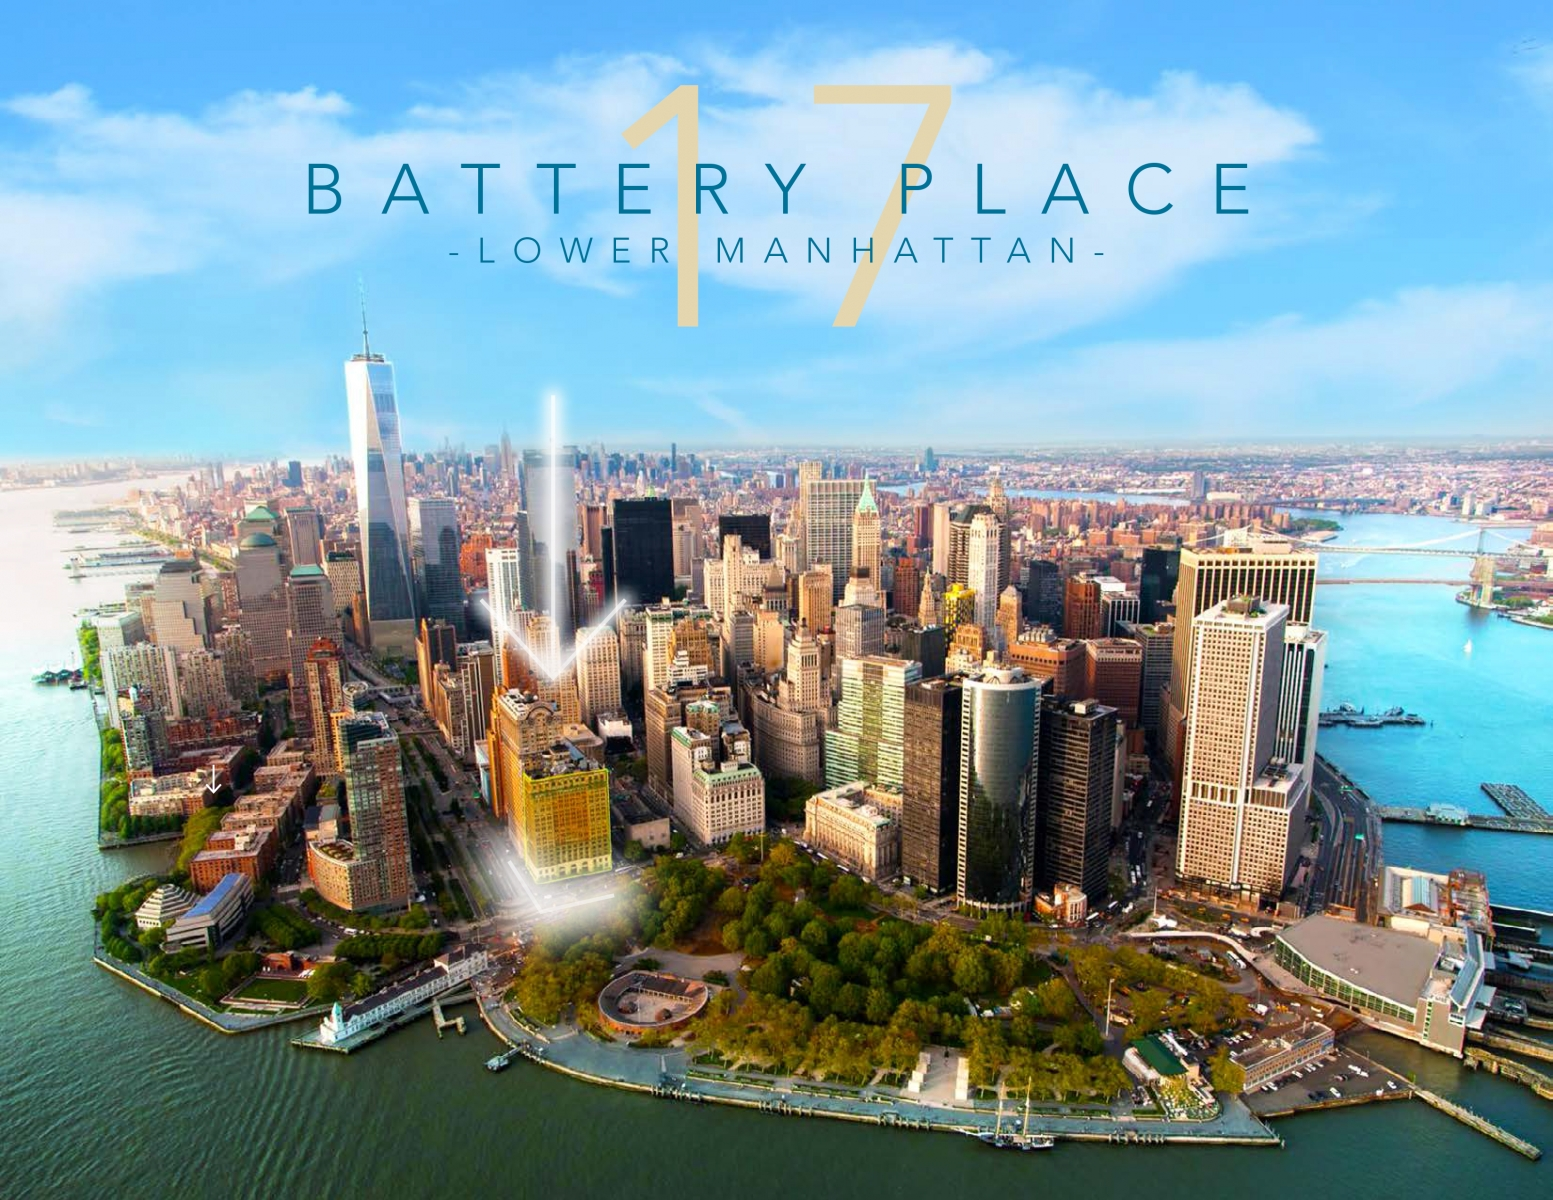 17 Battery Pl, New York, NY 10004, USA